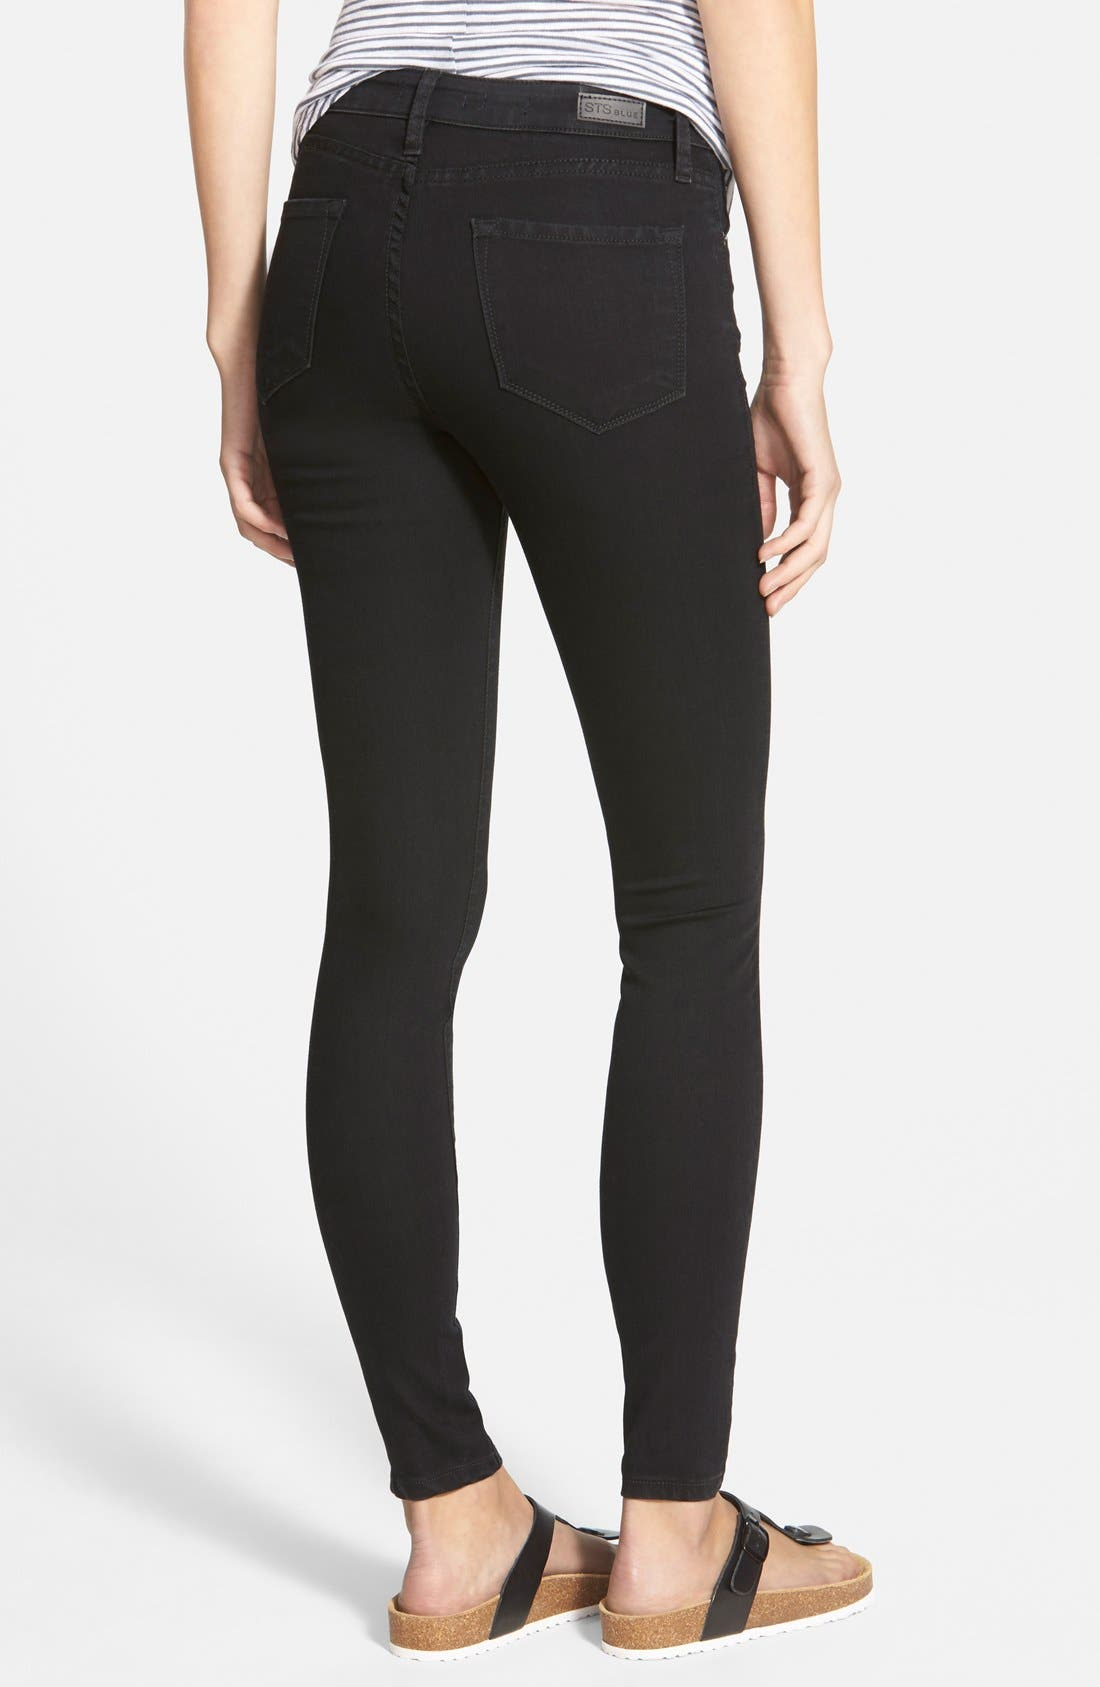 'Piper' Skinny Jeans,                             Alternate thumbnail 4, color,                             001